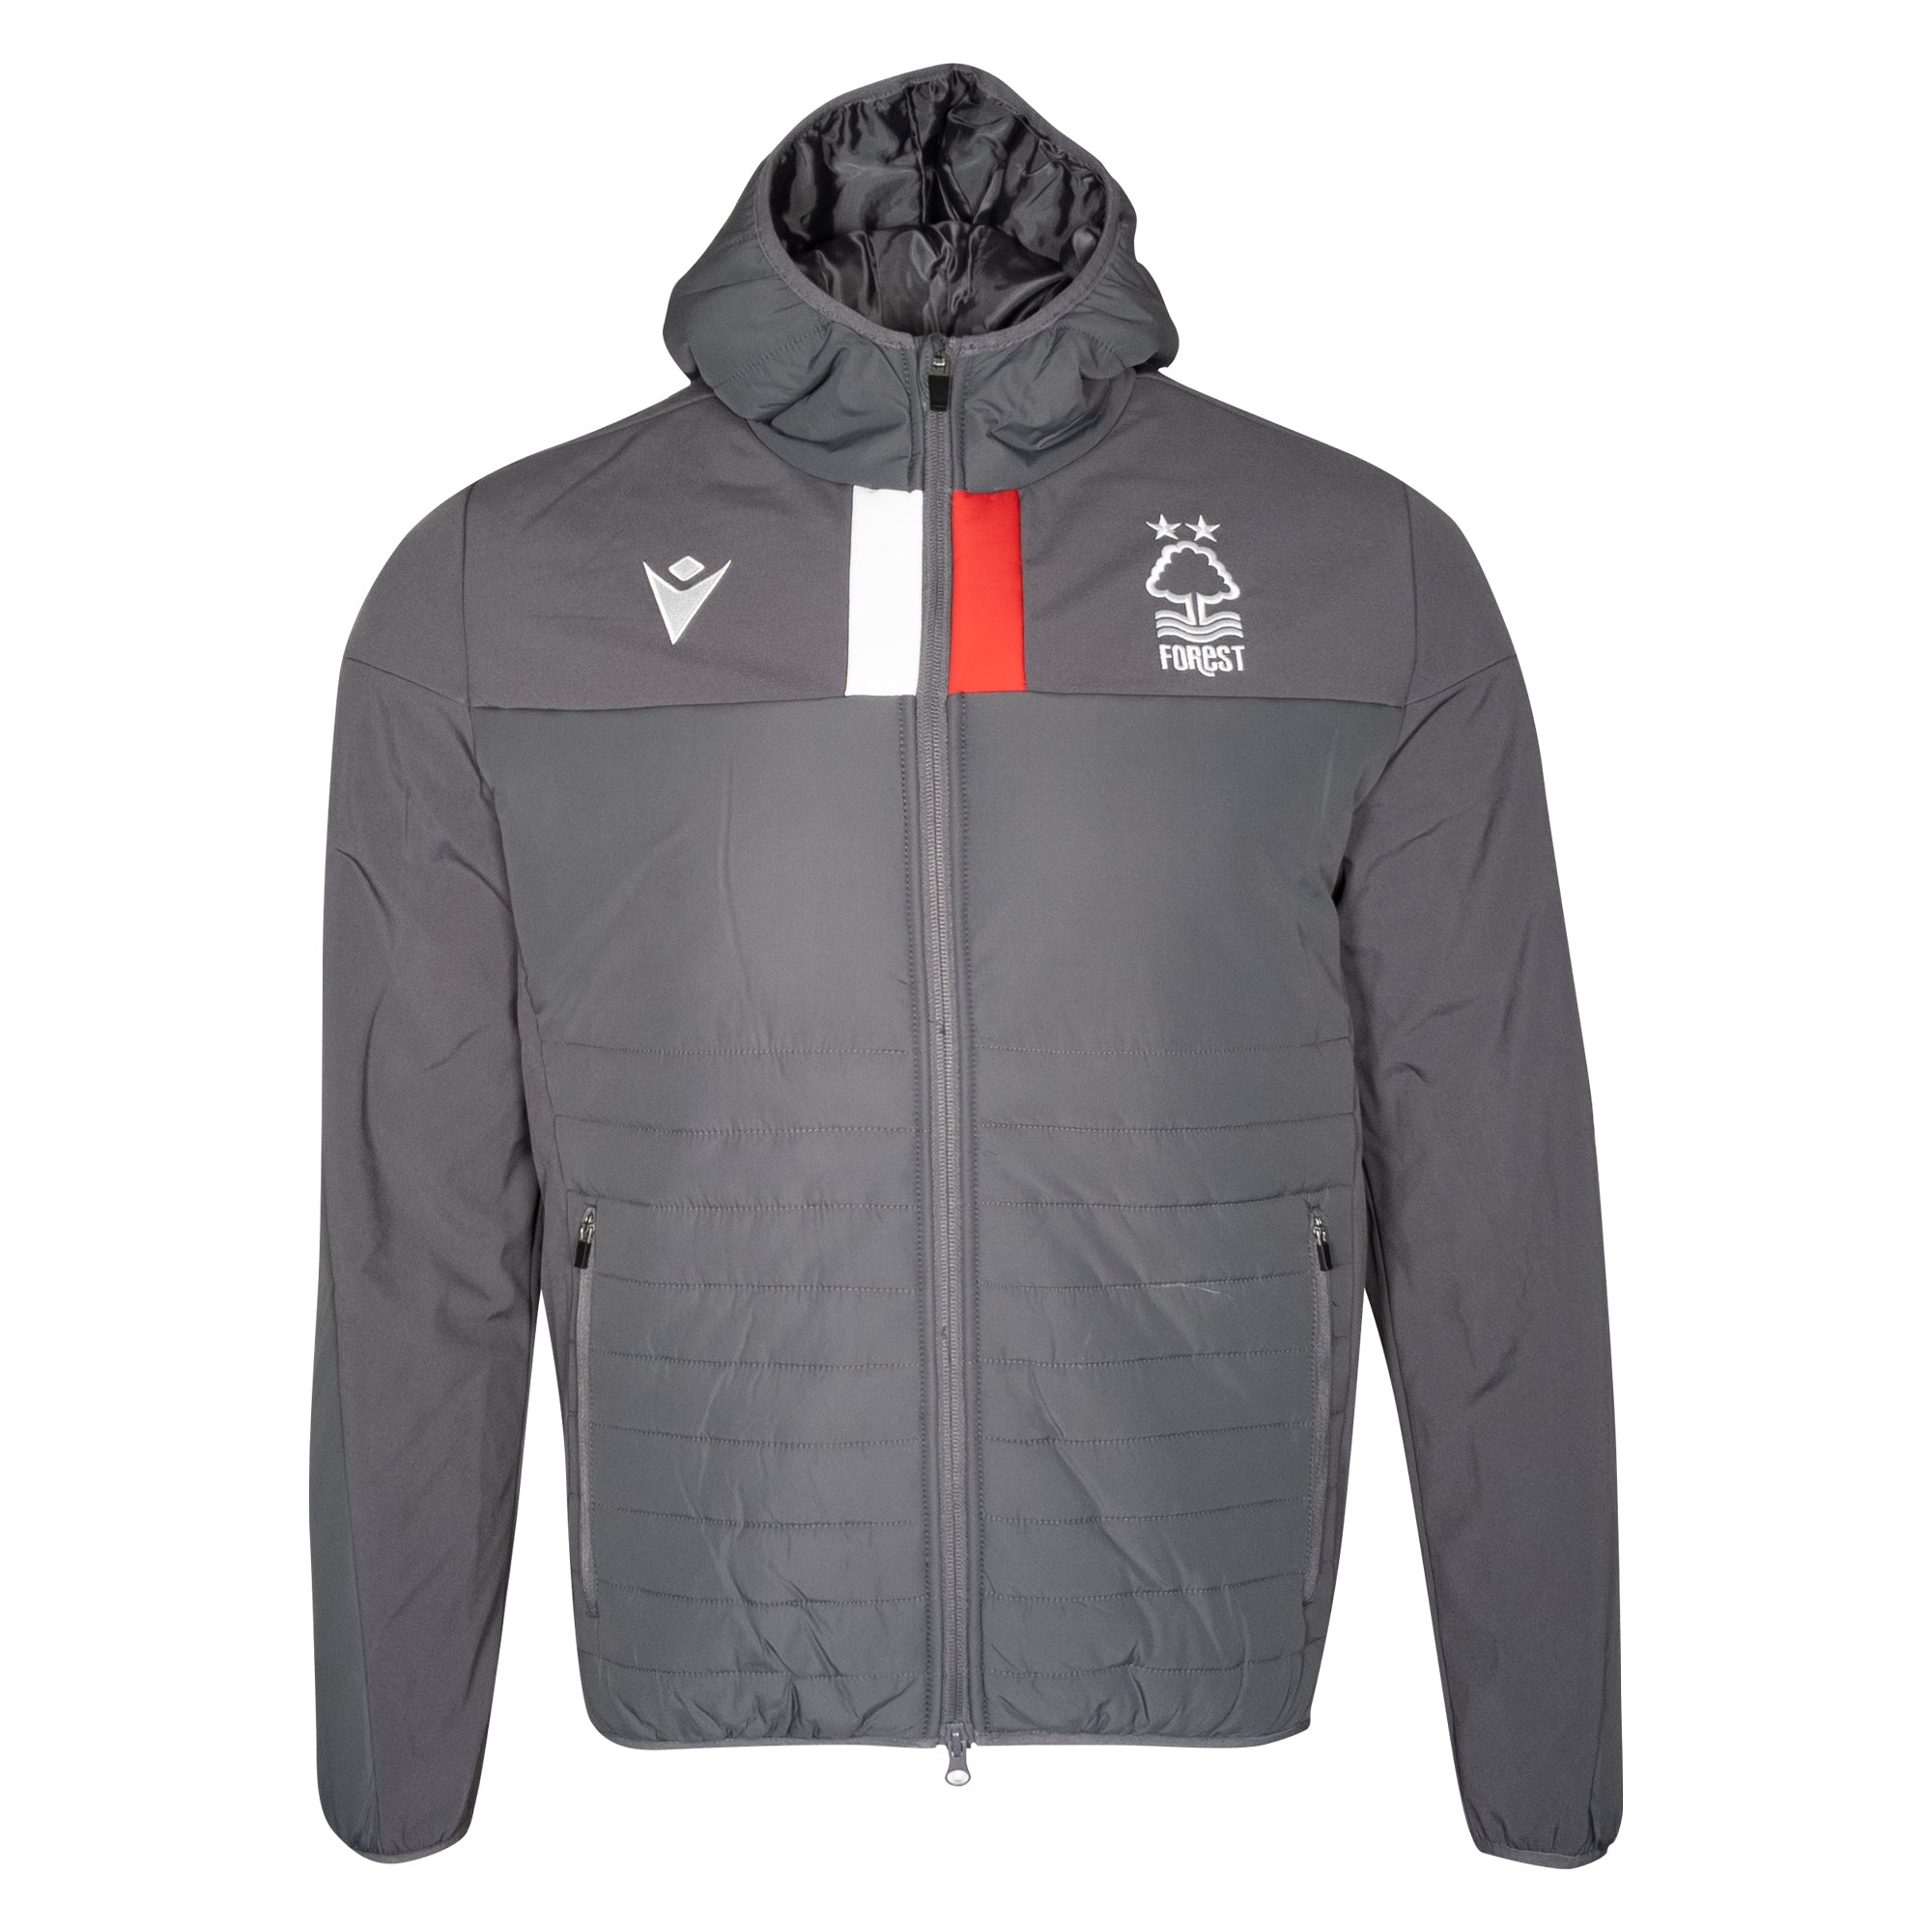 NFFC Junior Grey Staff Bomber Jacket 19/20